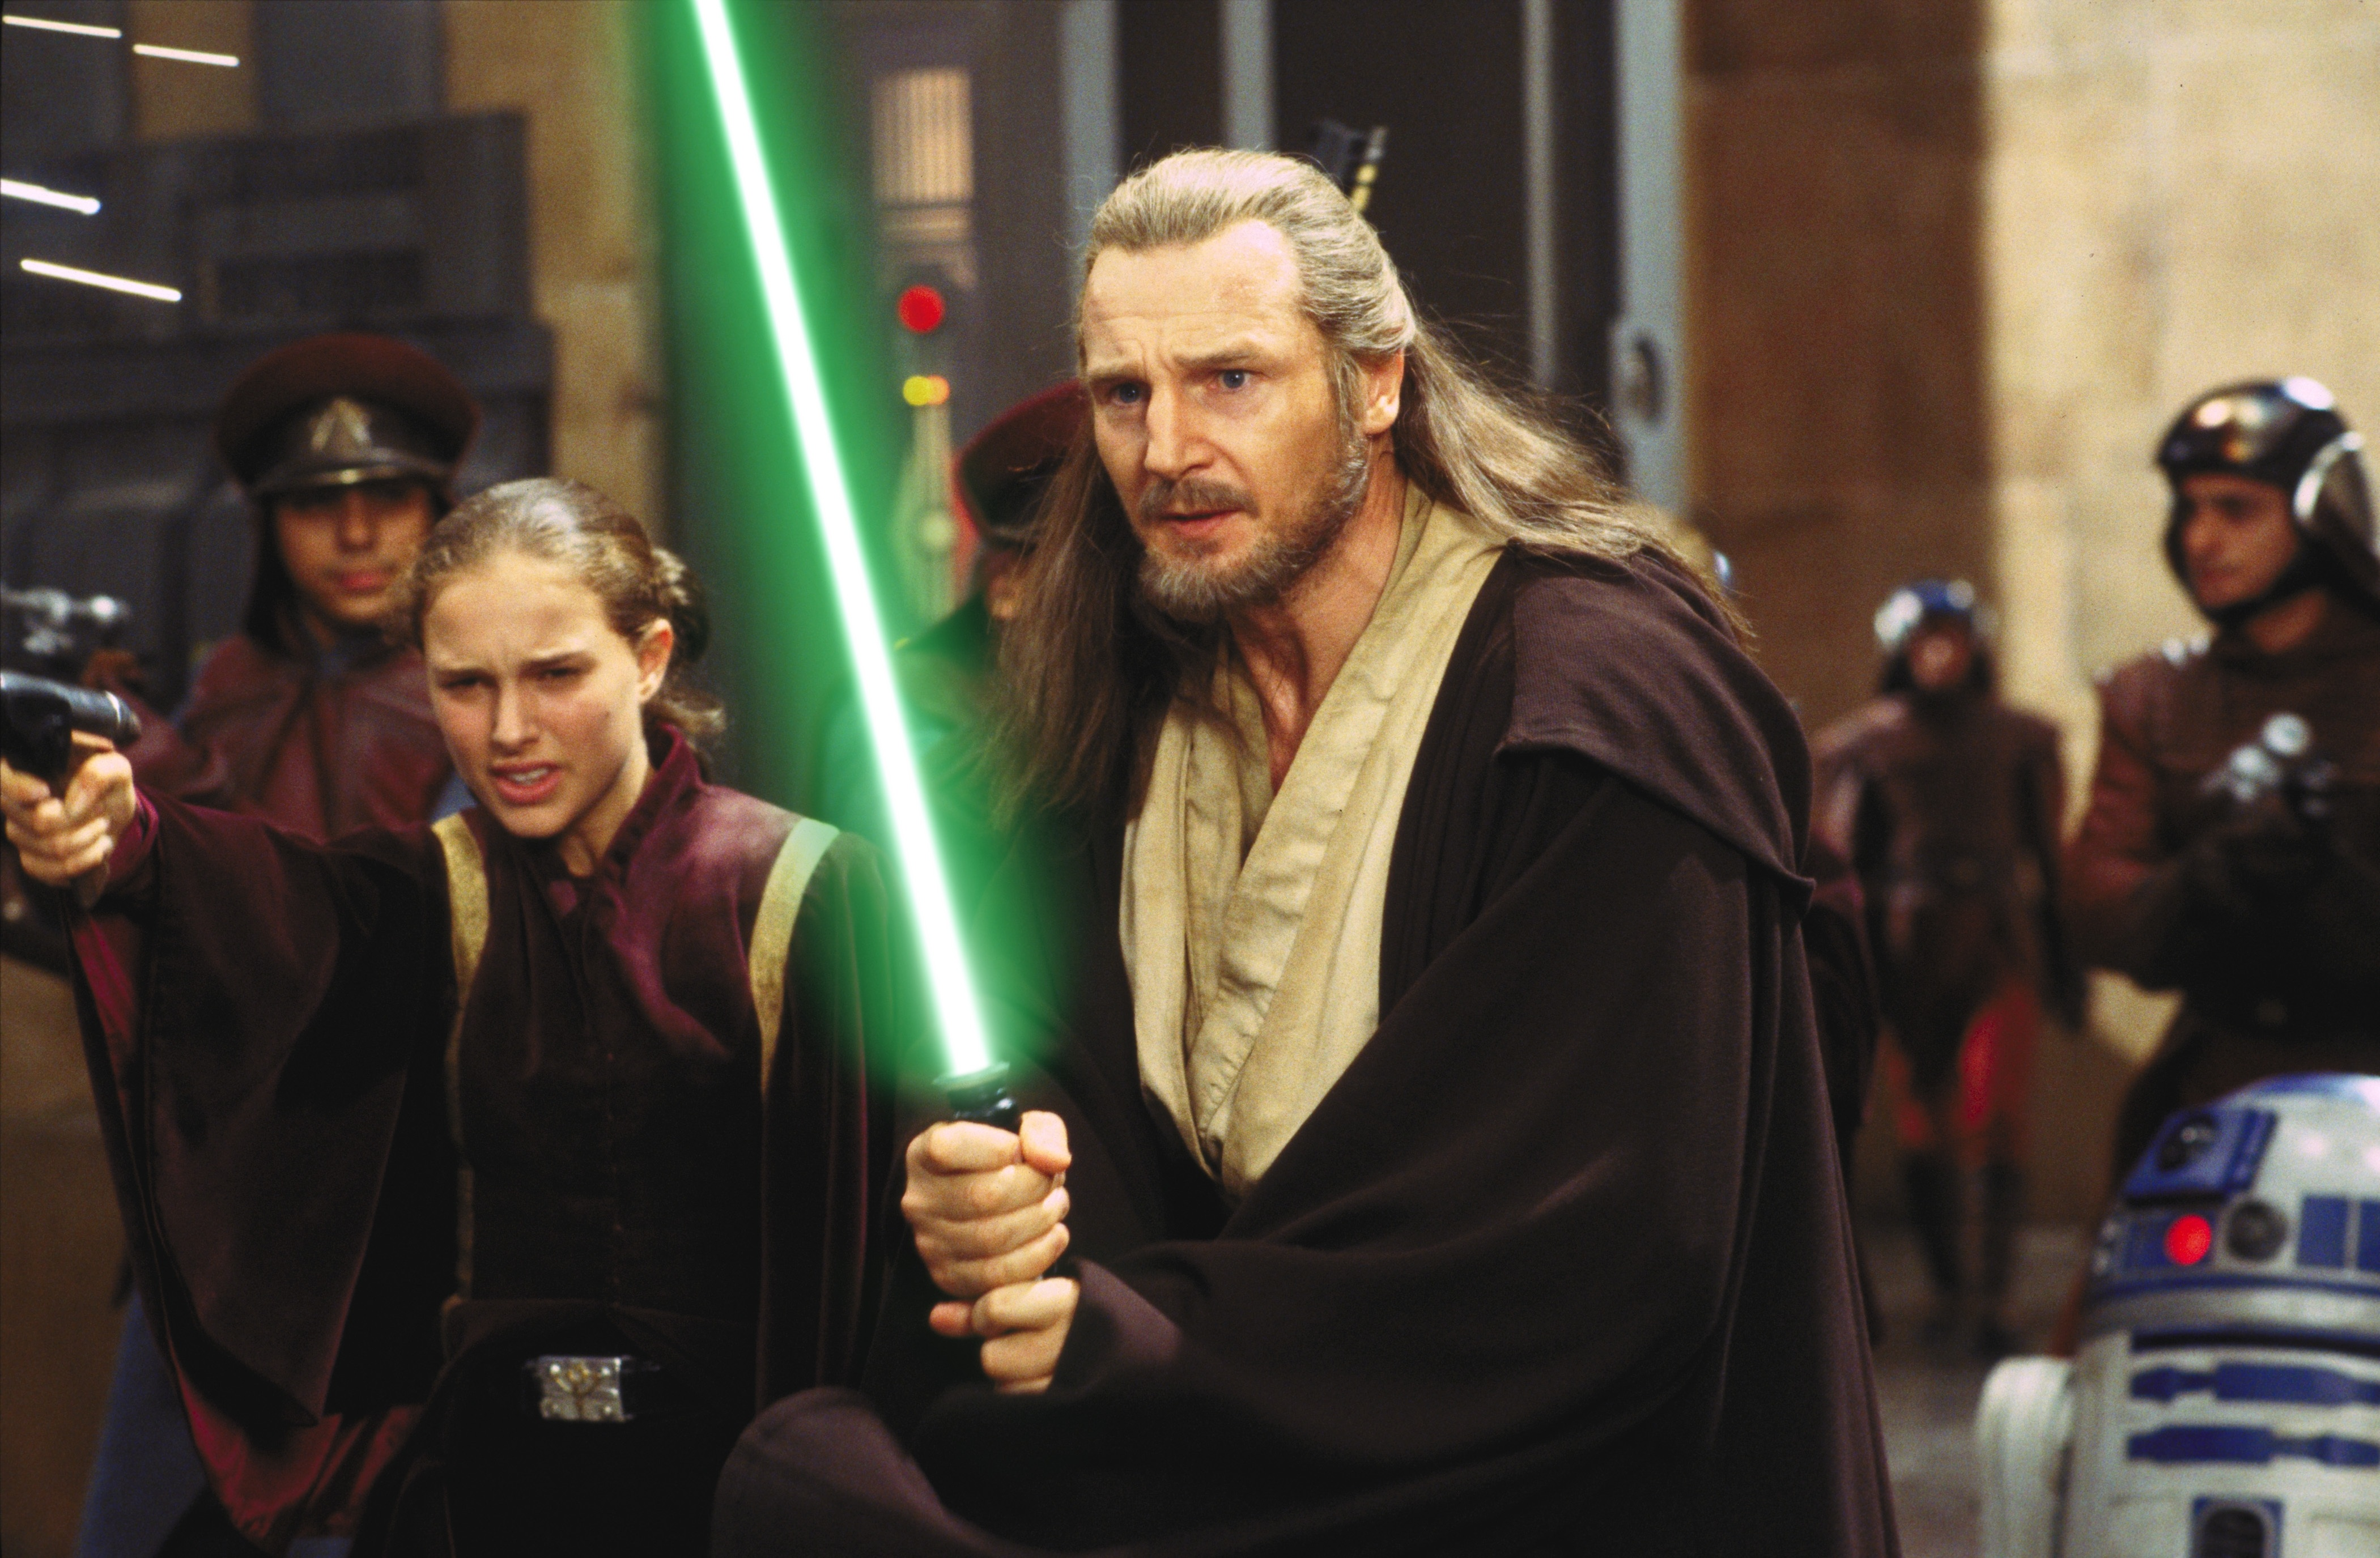 Liam Neeson and Natalie Portman in  Star Wars: Episode I - The Phantom Menace .